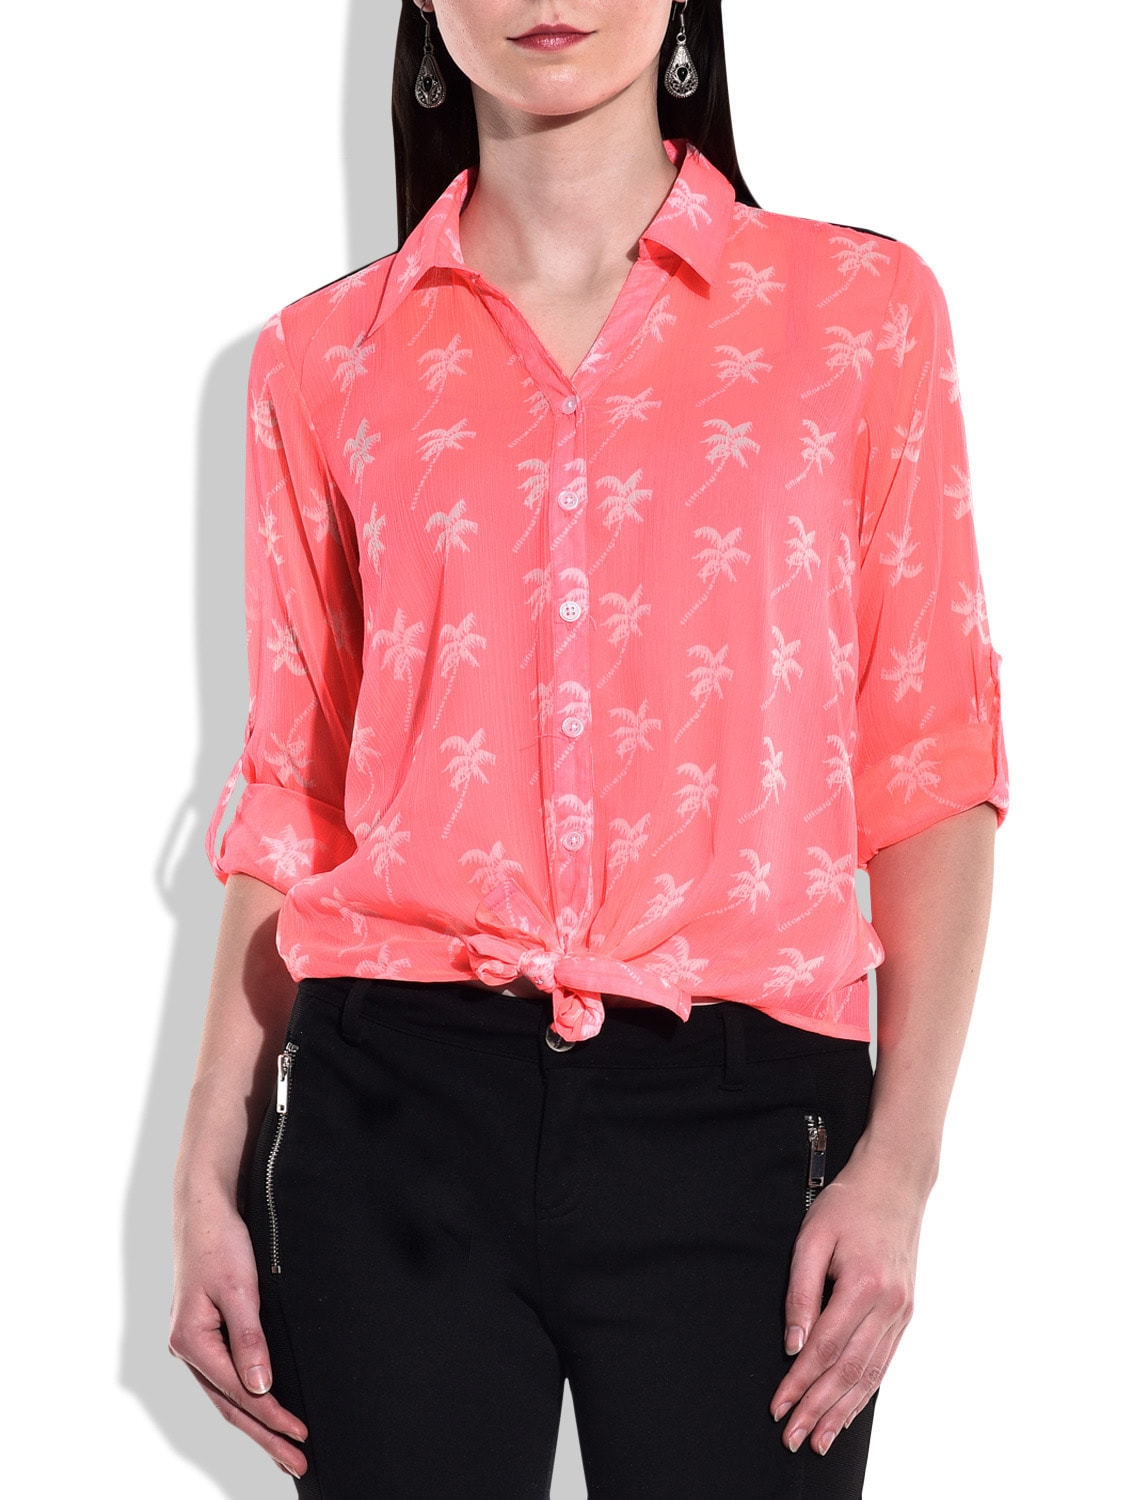 Neon Pink, White PolyChiffon, Lace Shirt - By